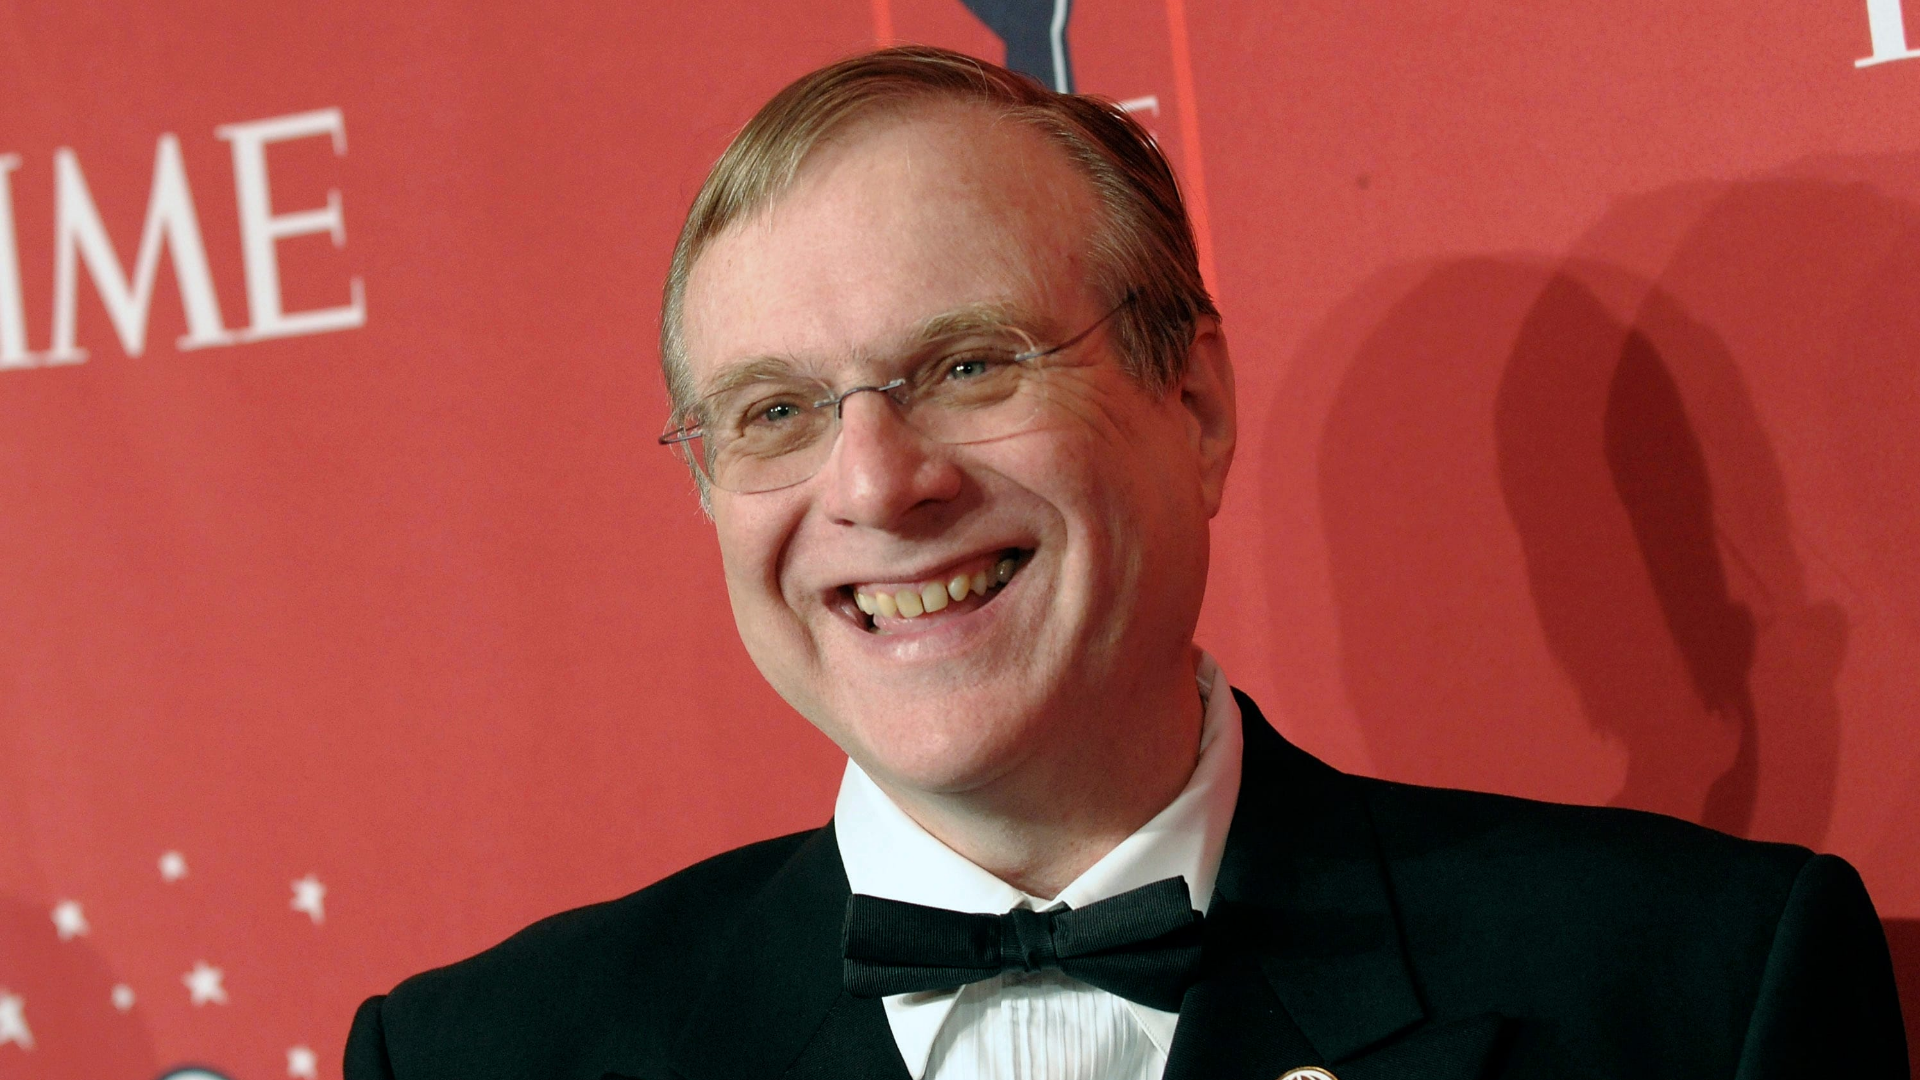 Paul Allen, Microsoft co-founder and billionaire investor, dies at 65